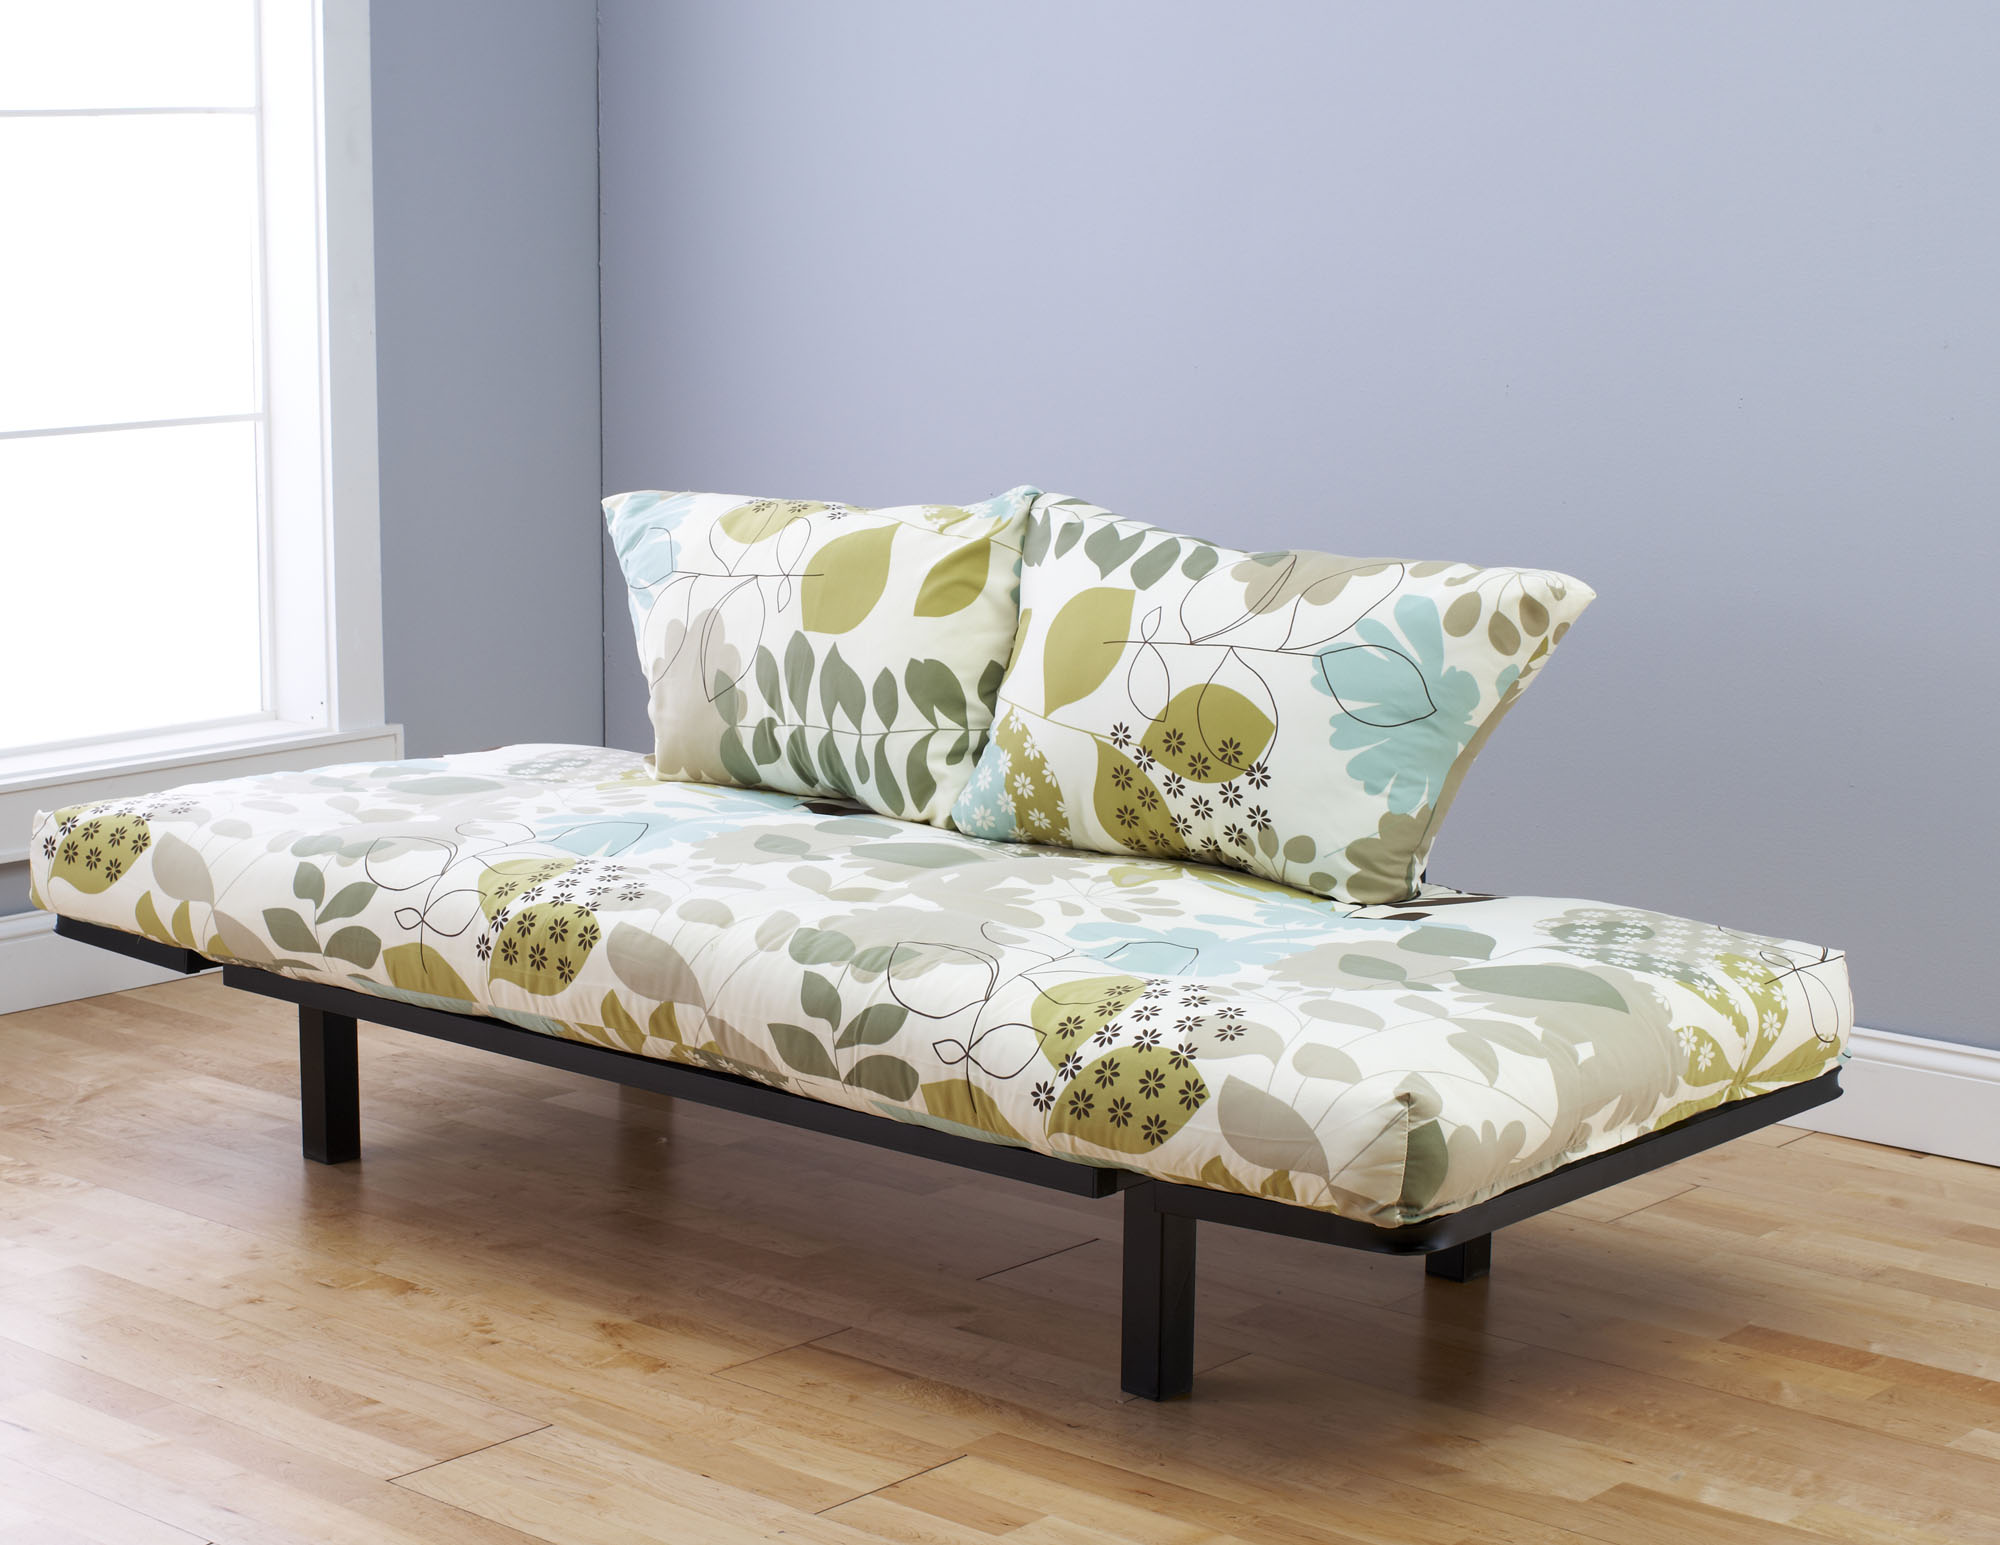 spacely futon daybed lounger with mattress english garden by kodiak  rh   futonland